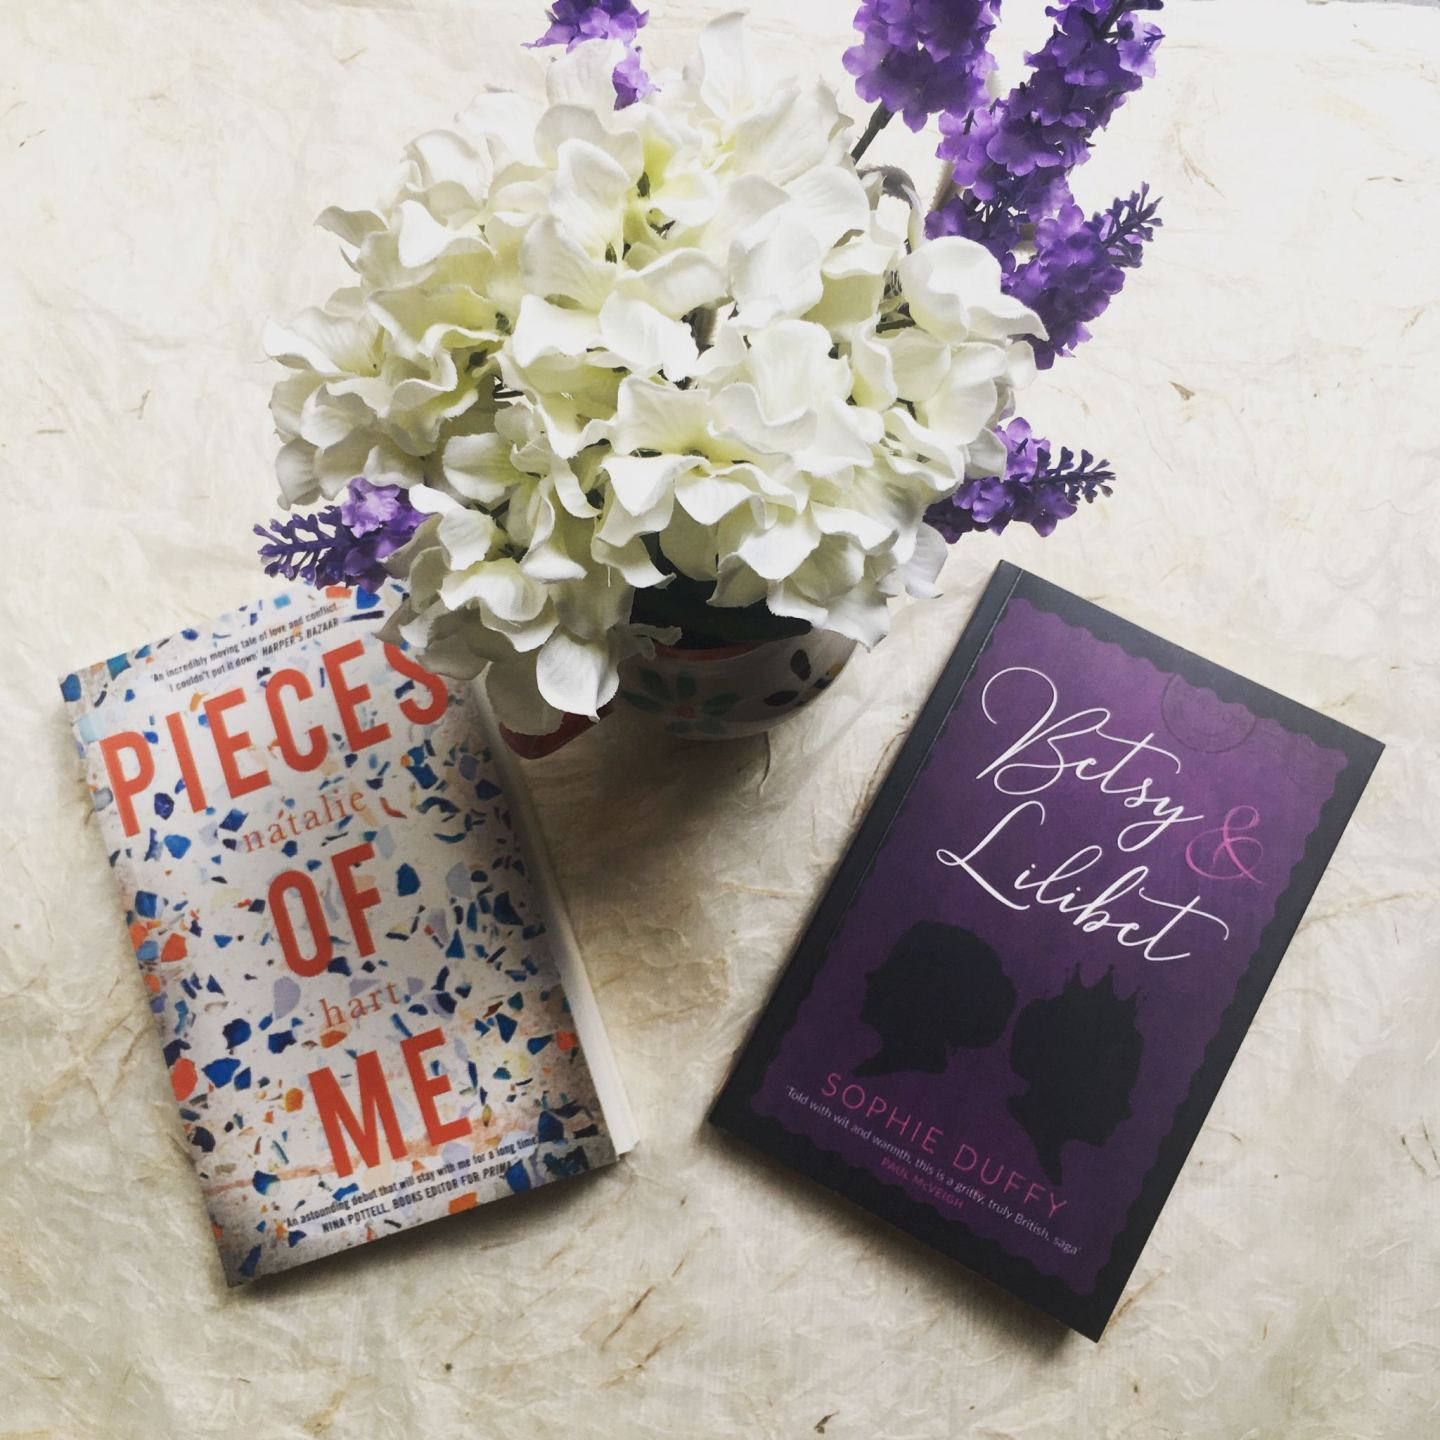 2018 wrap up; my top books of the year